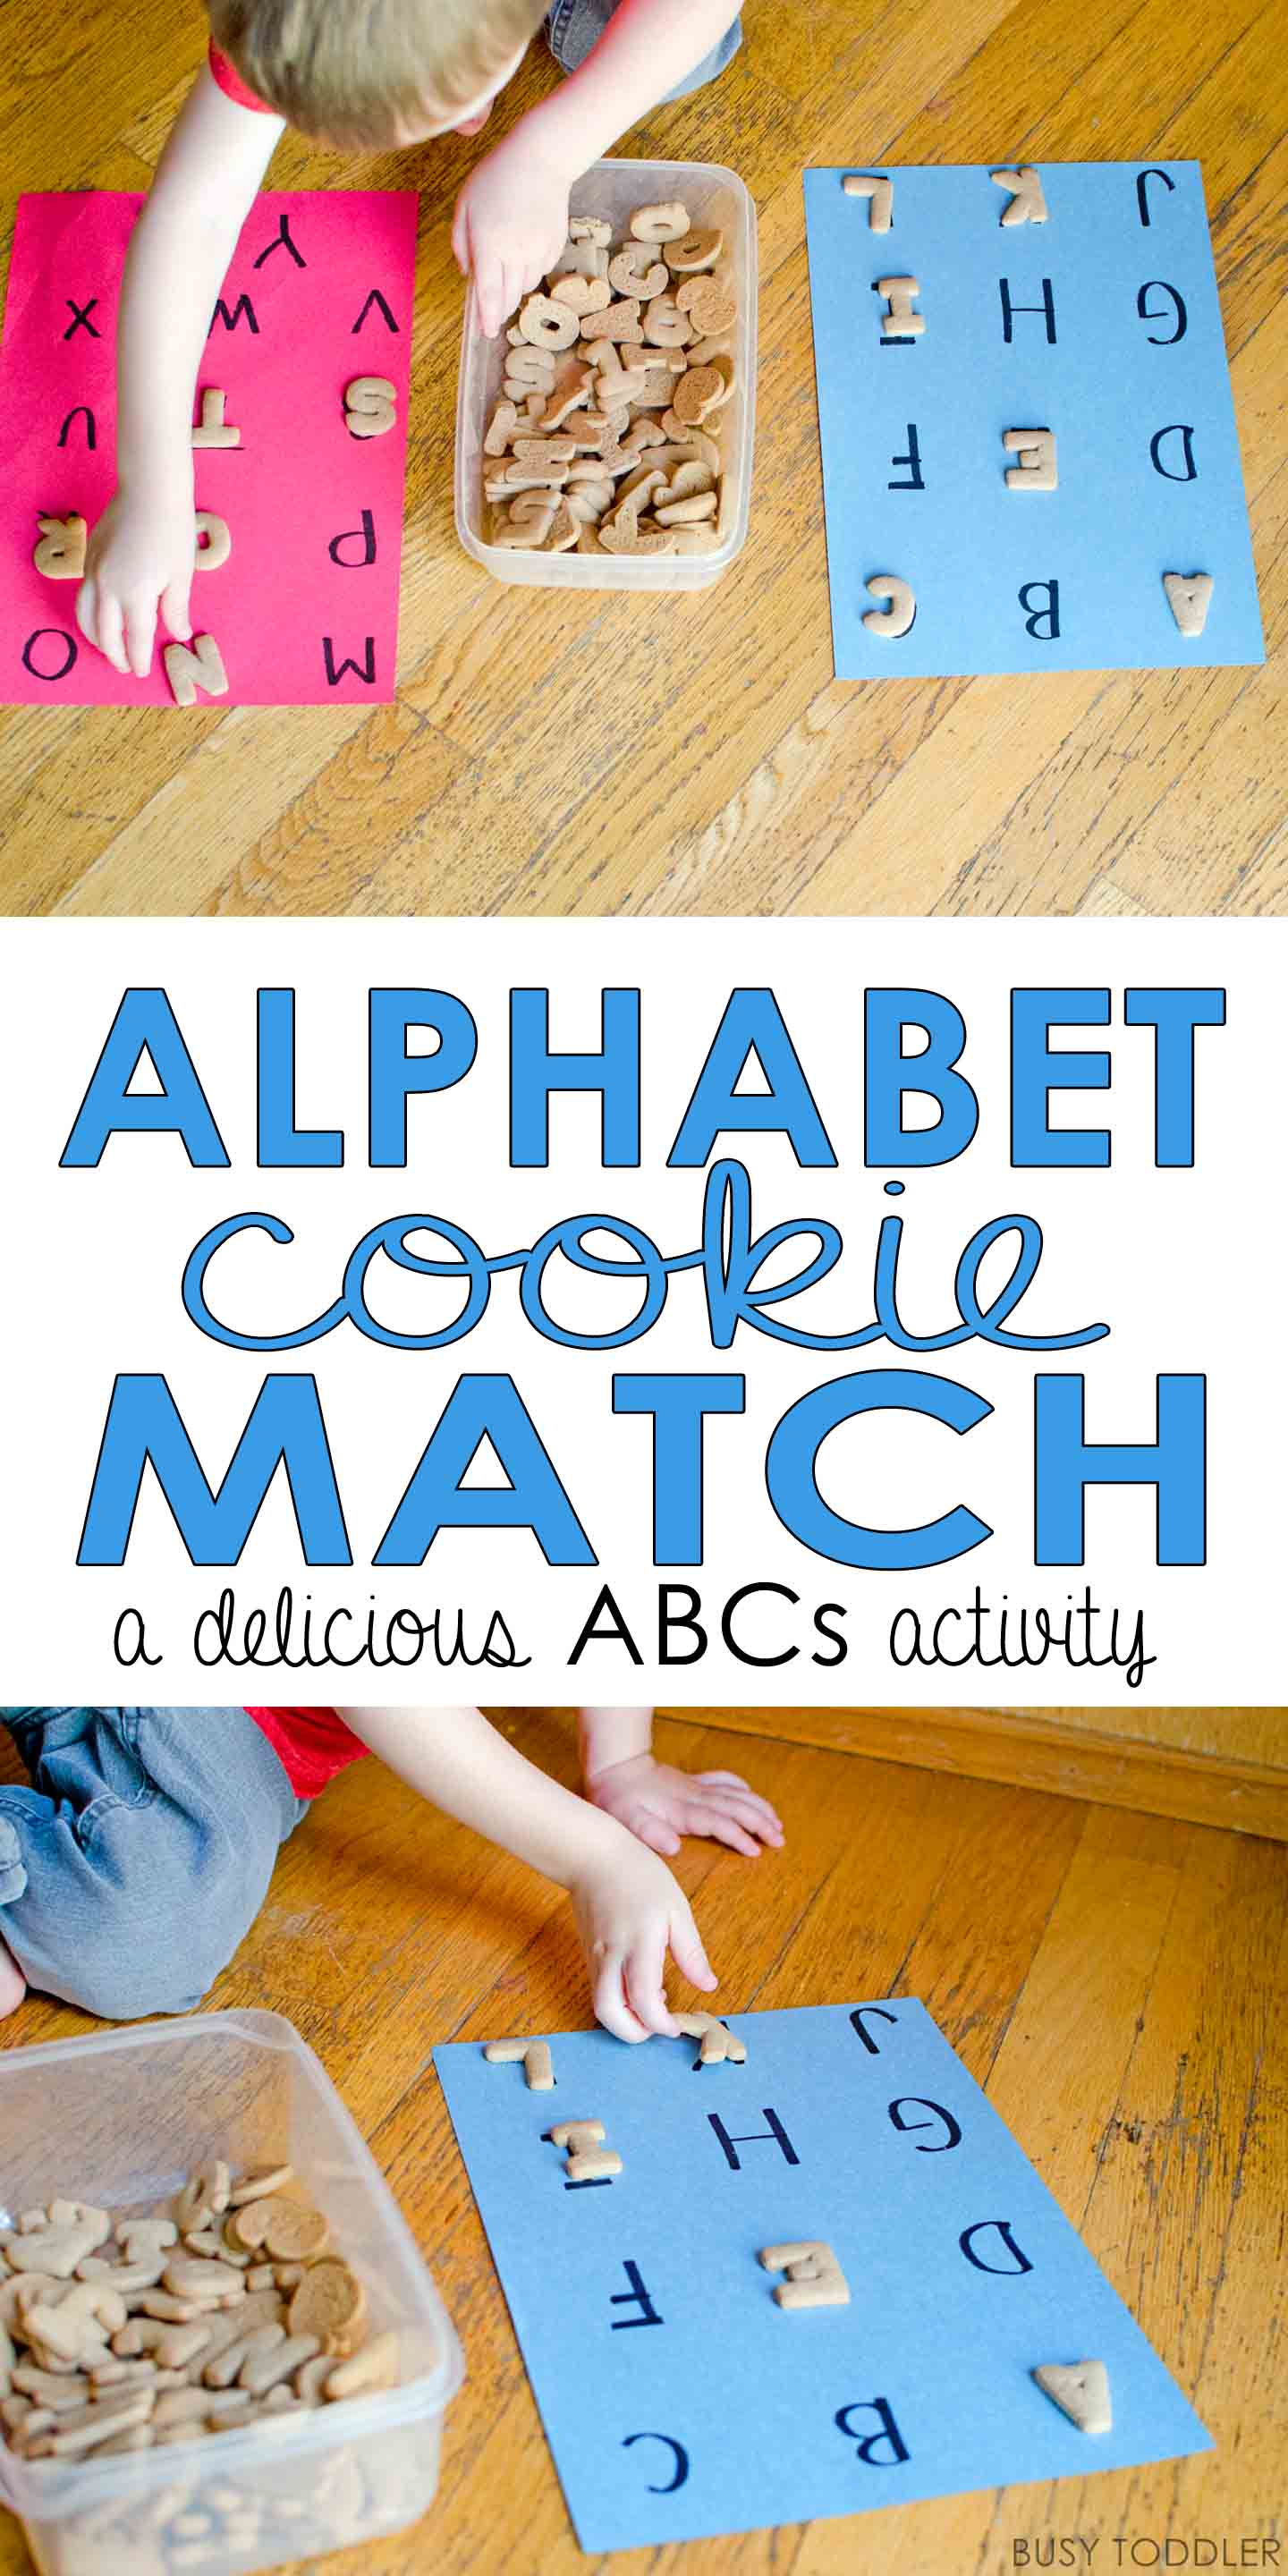 Alphabet Cookie Match Game - Busy Toddler